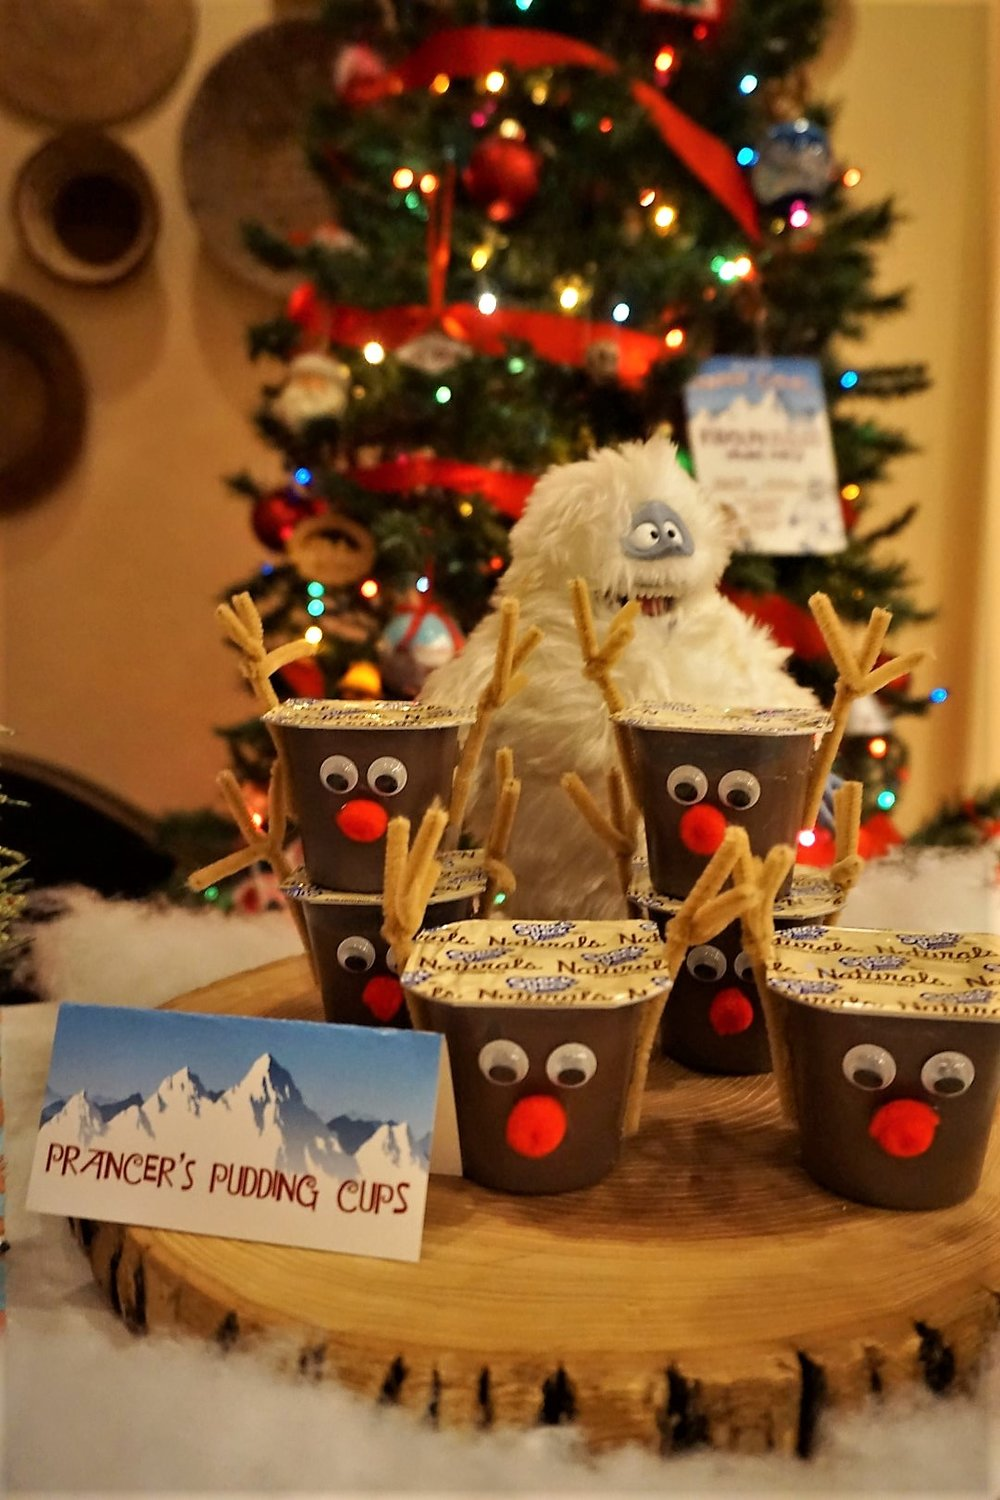 DIY reindeer pudding cups made with pipe cleaners, googly eyes, and felt pom poms.